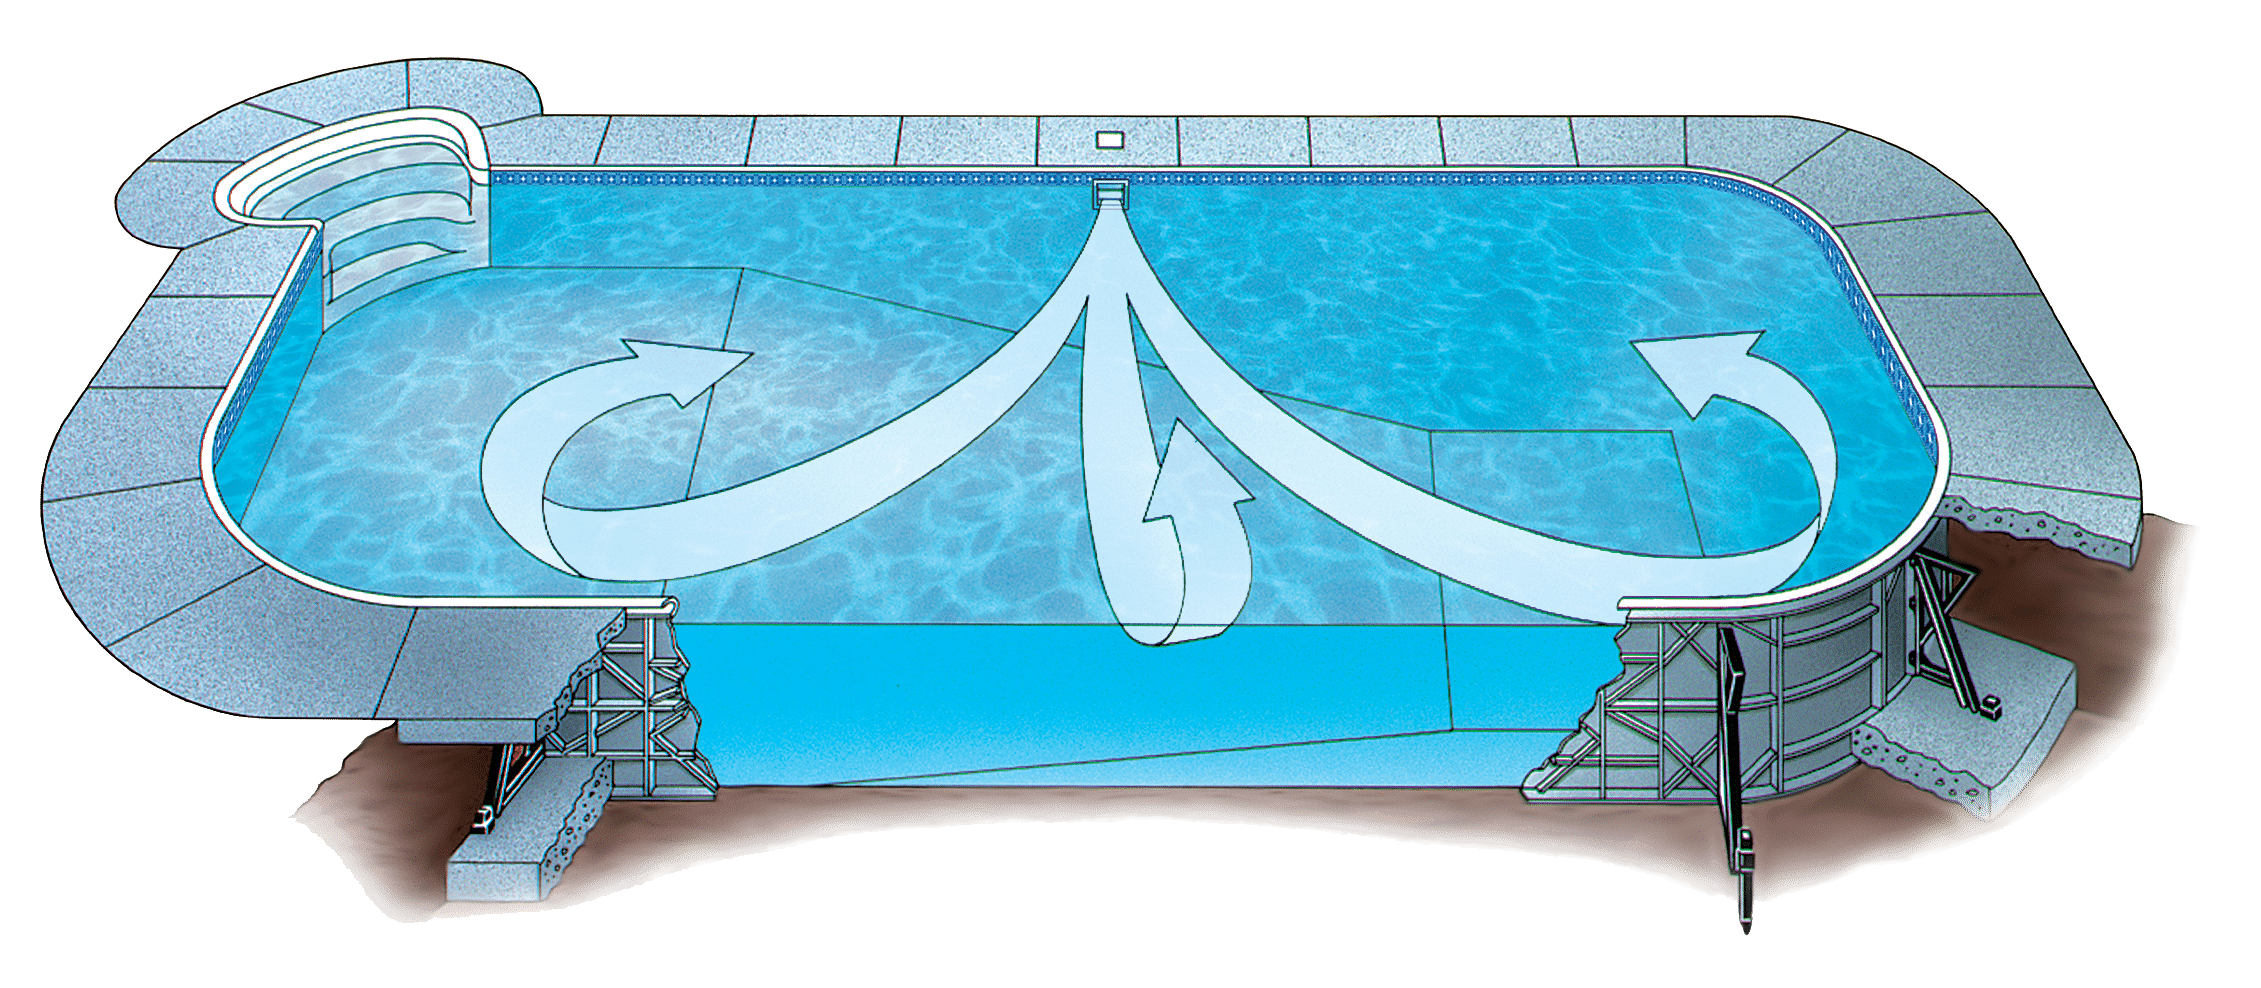 Aqua Genie Pool Skimmer Flow Diagram